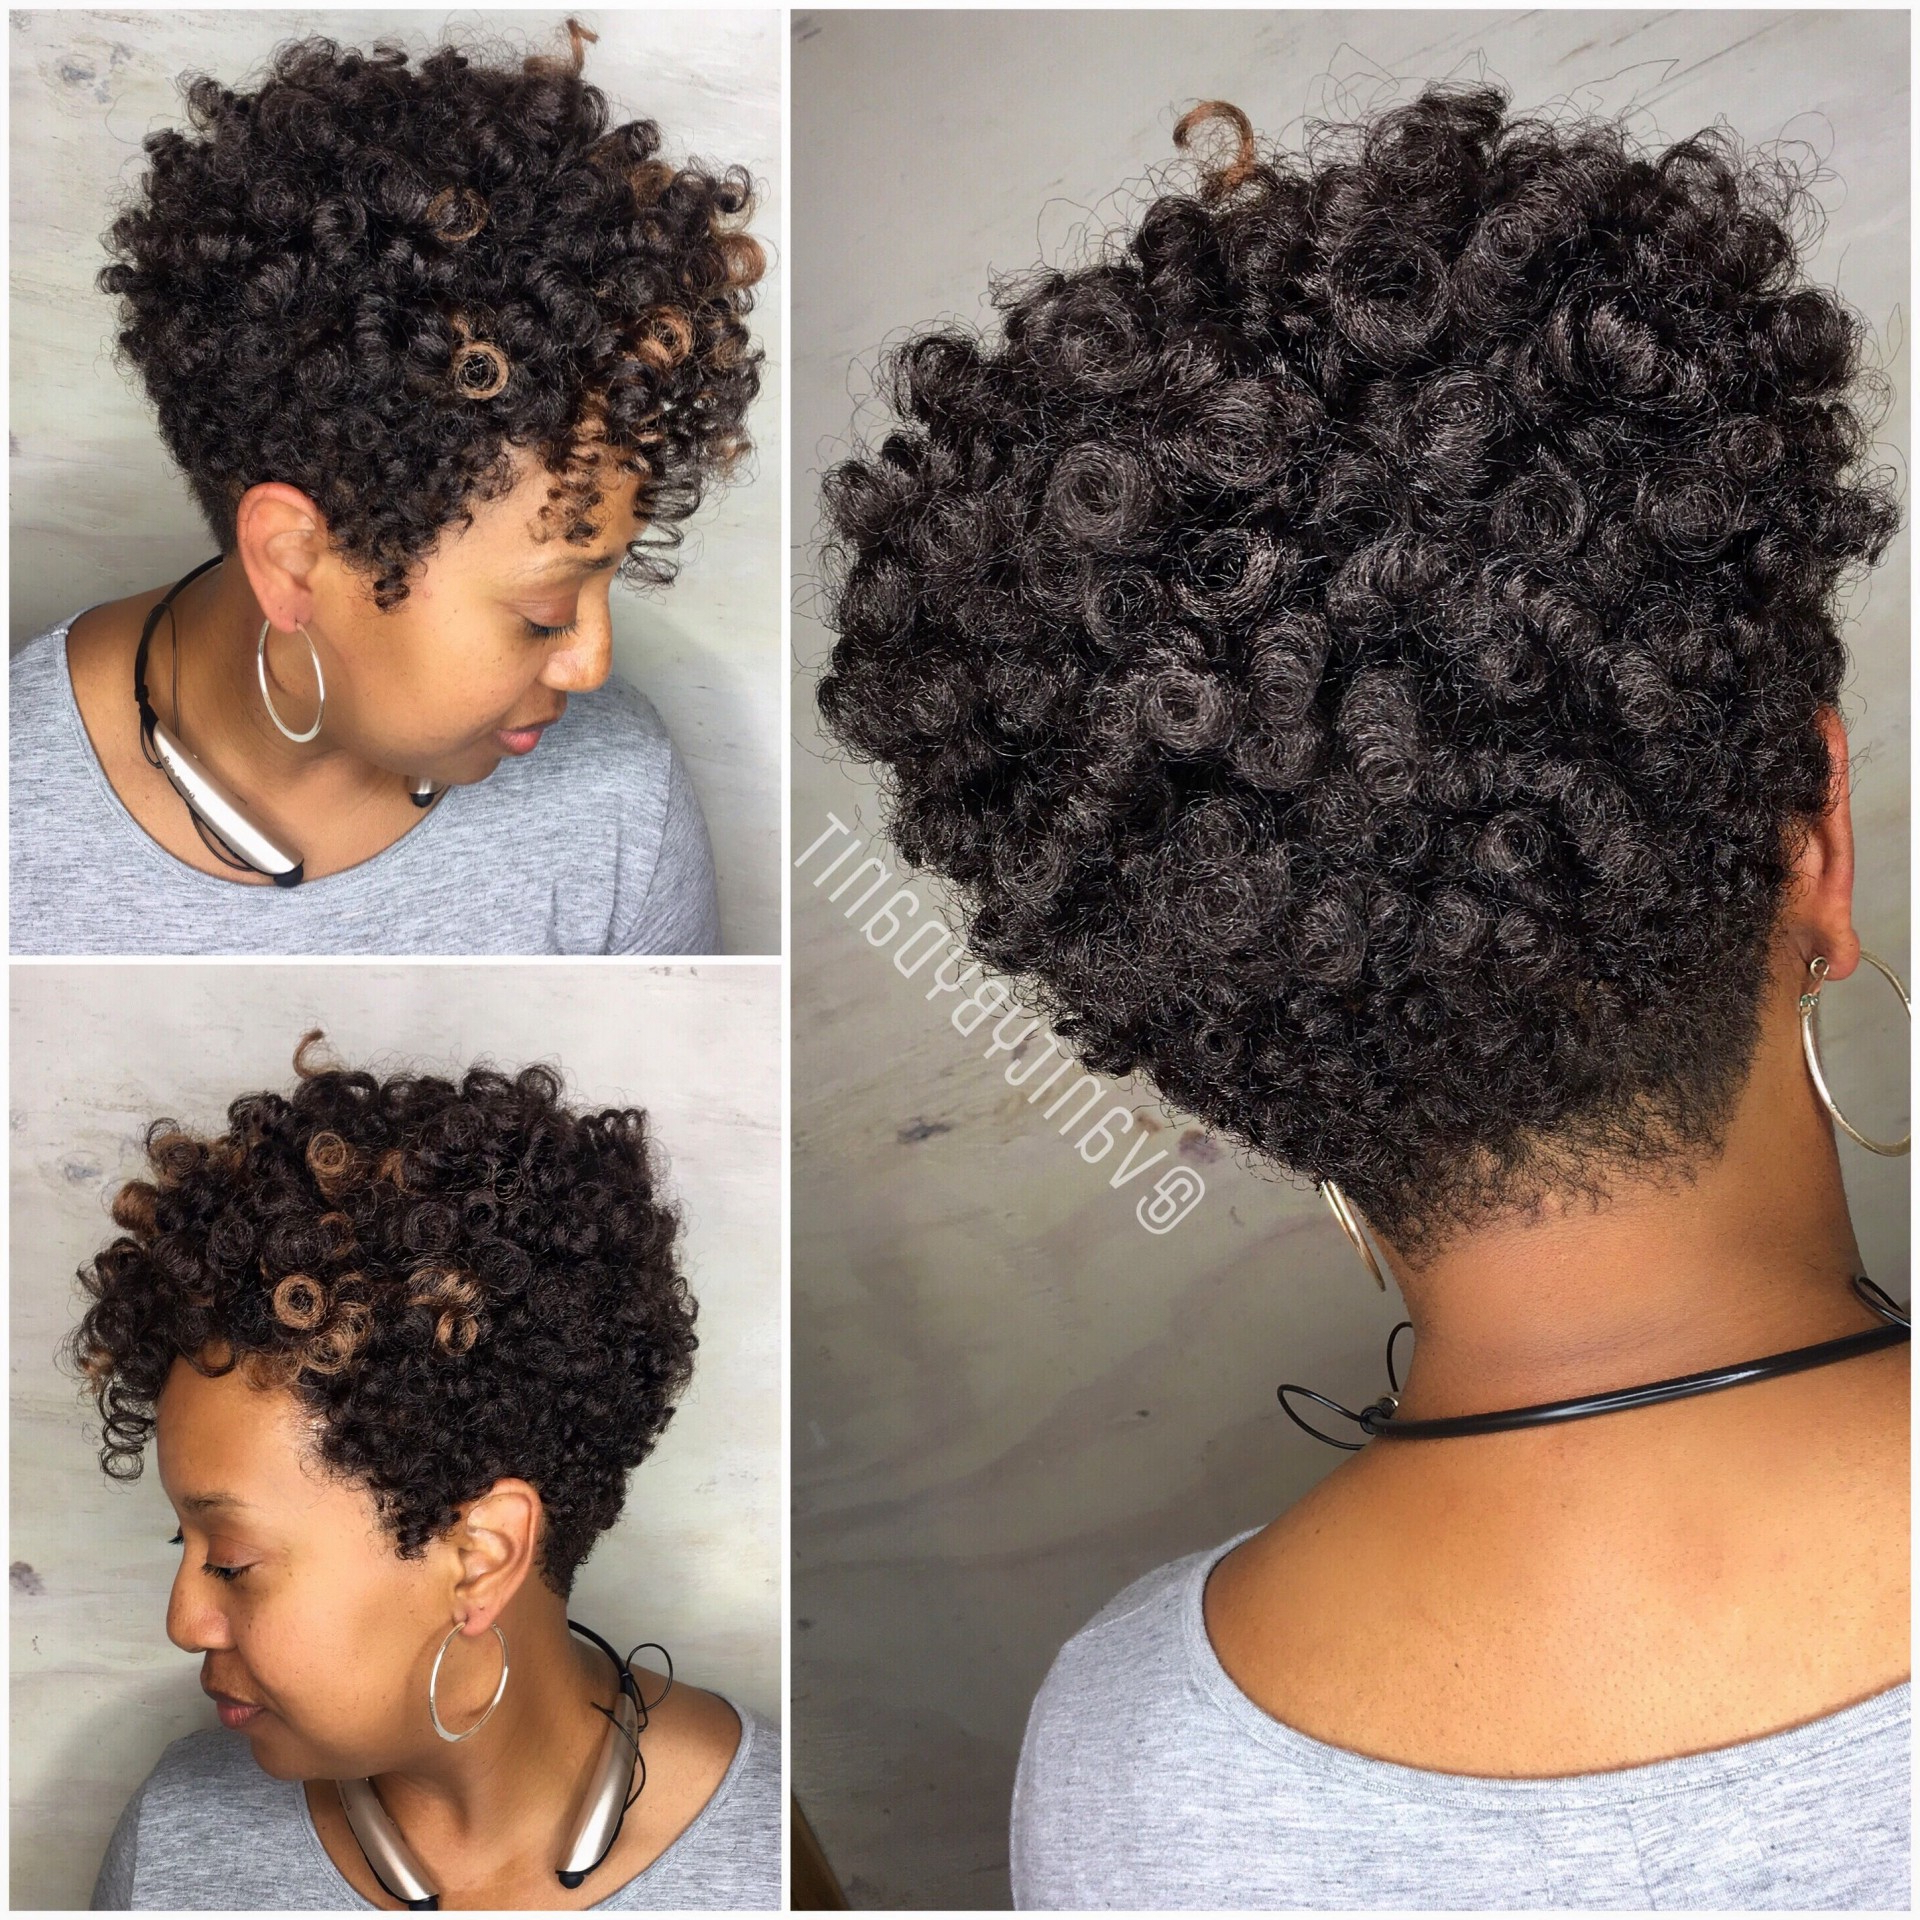 002 Short Crochet Braids Phenomenal Hairstyles Images Of Throughout Most Up To Date Short Stacked Bob Micro Braids (View 16 of 20)